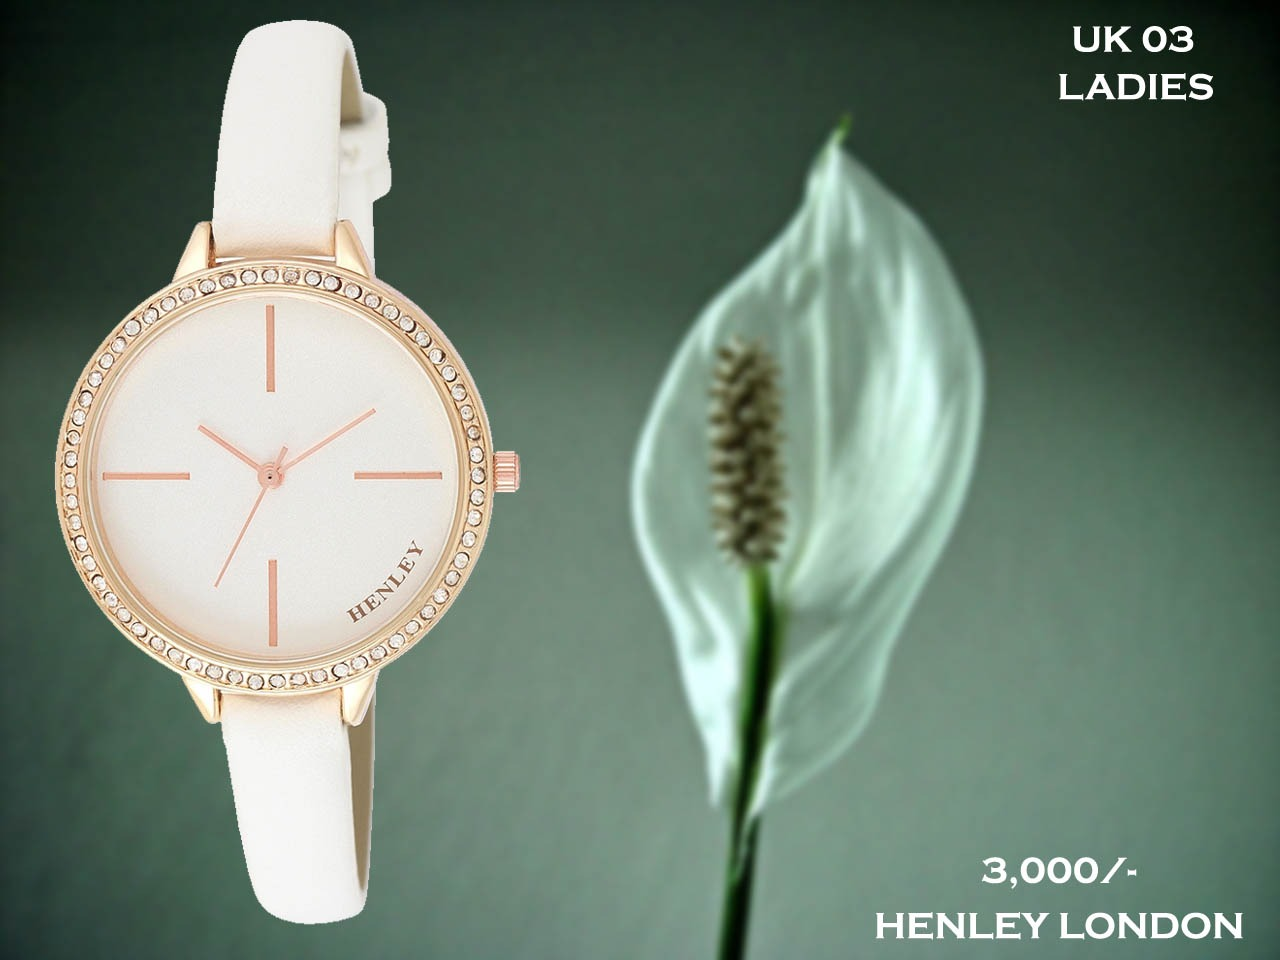 Henley London Exclusive Ladies Timepiece UK 03